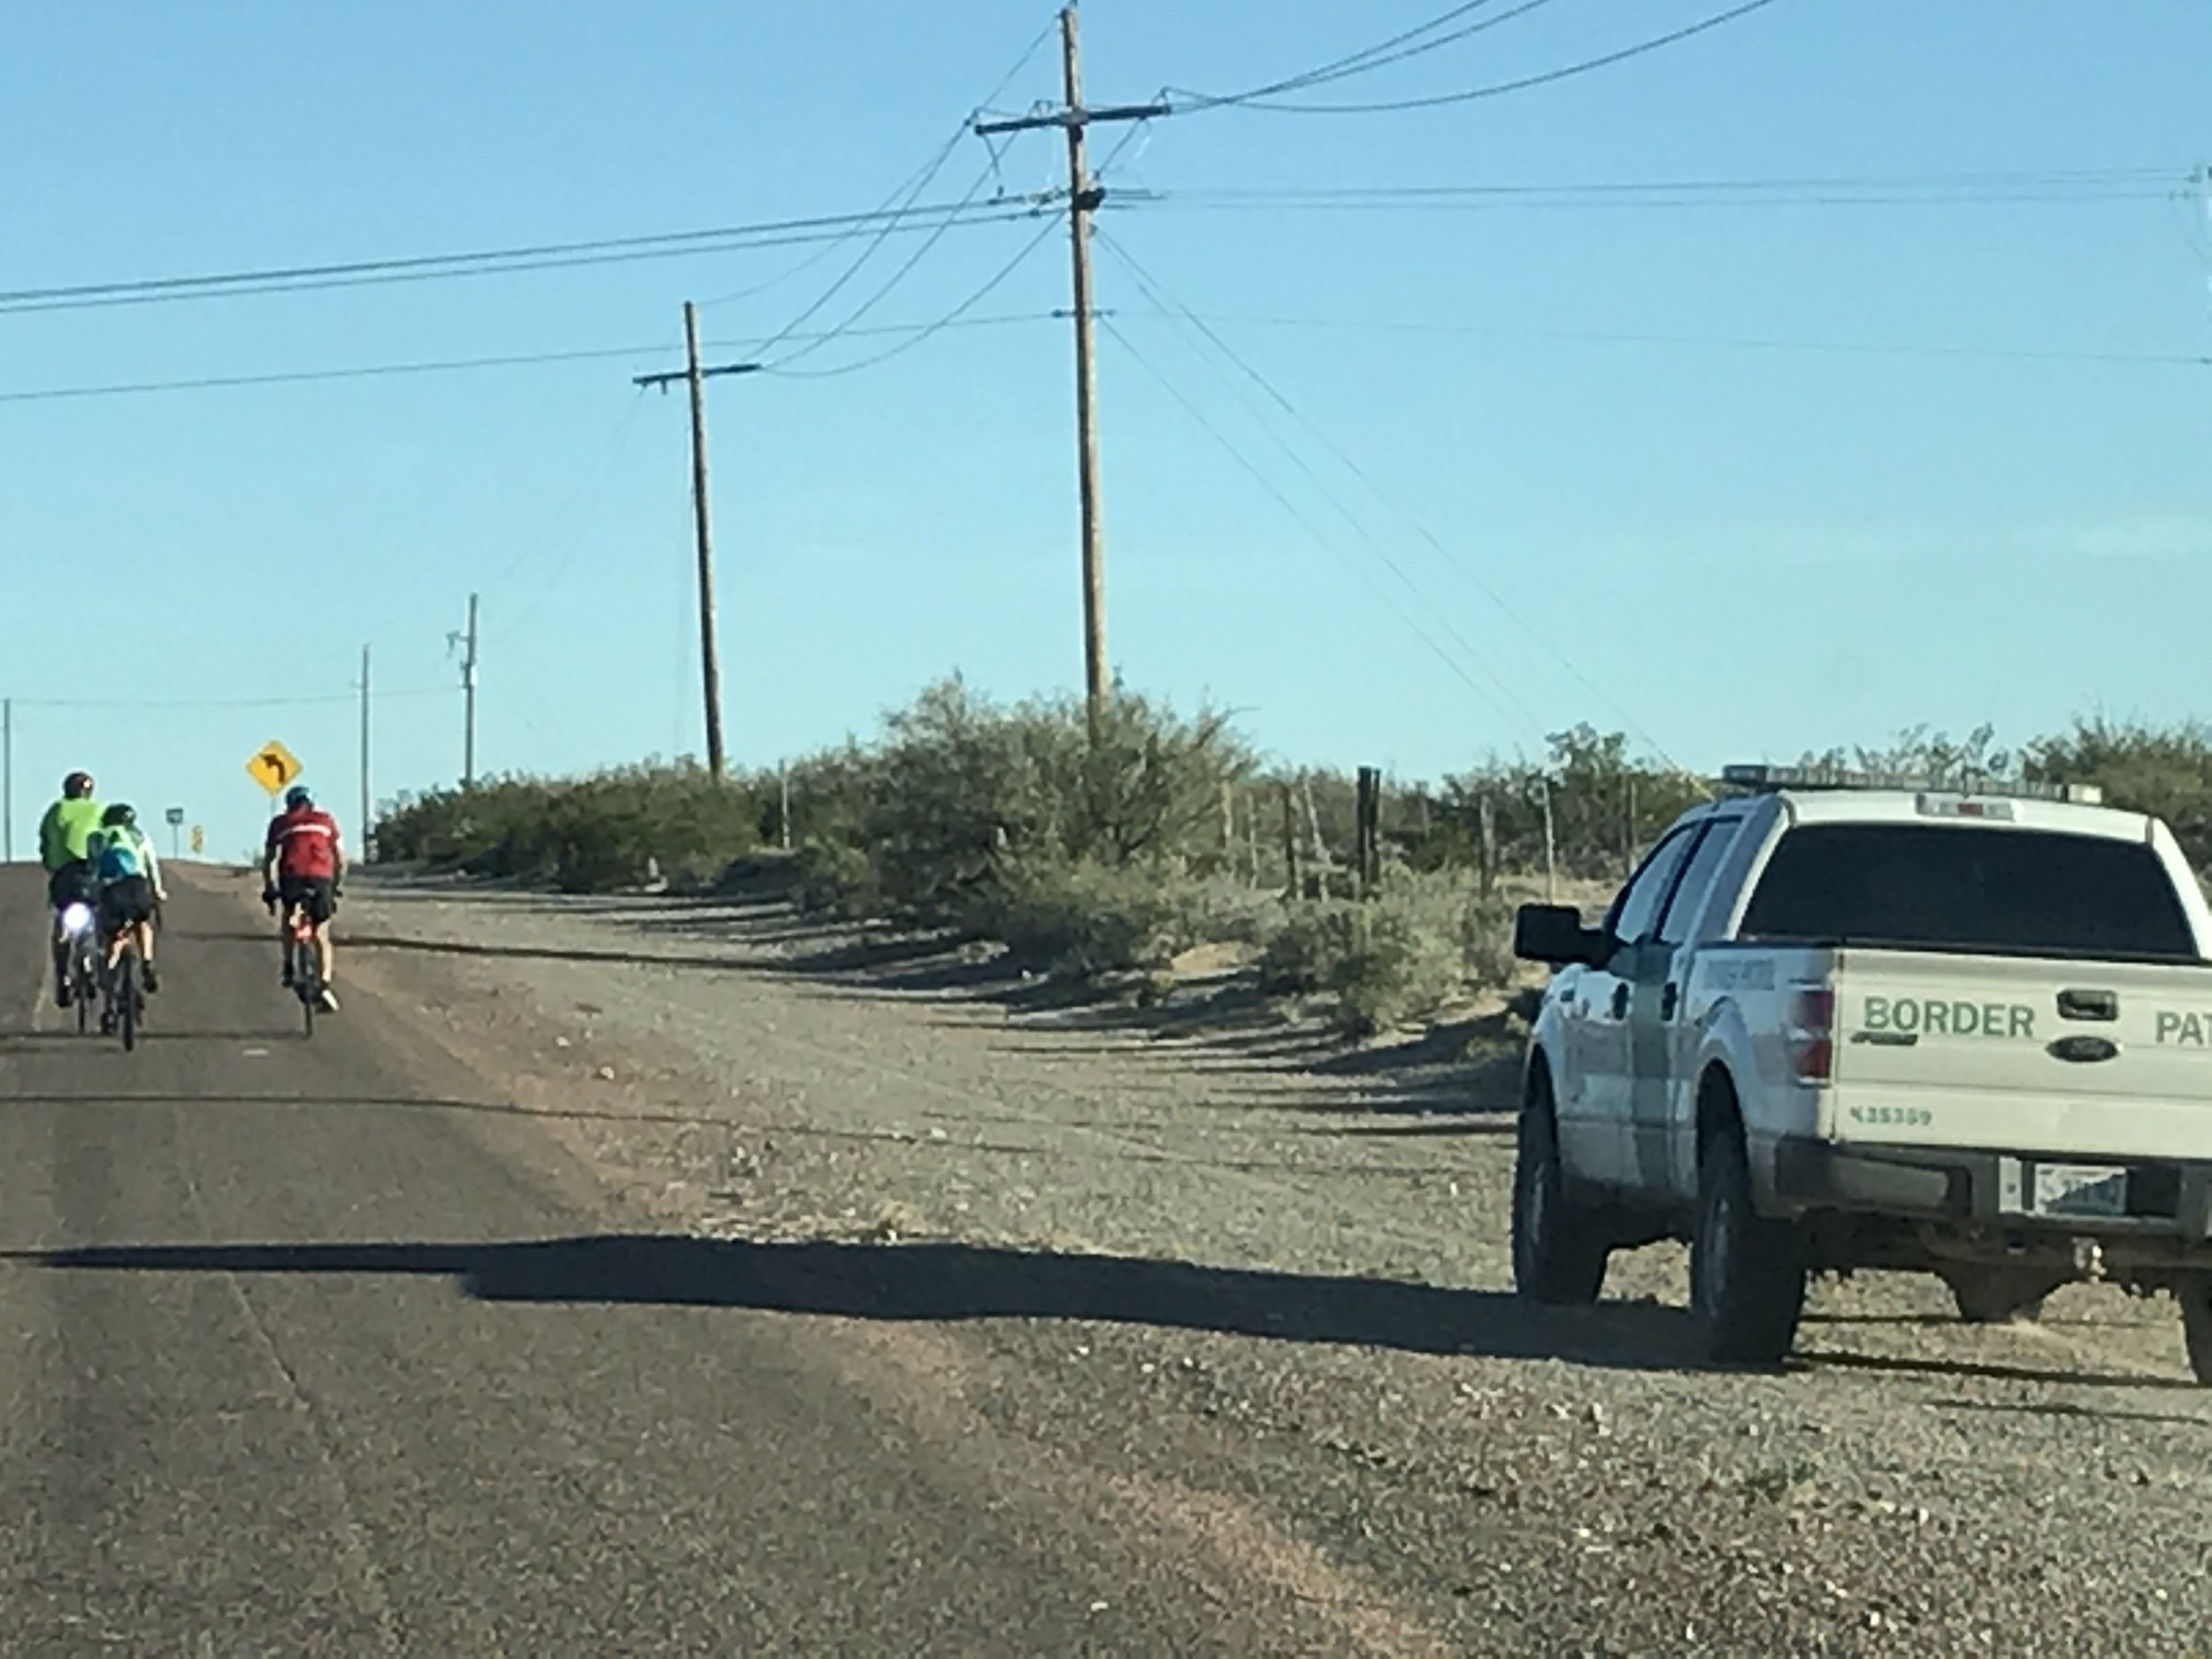 Riding along with boarder patrol.